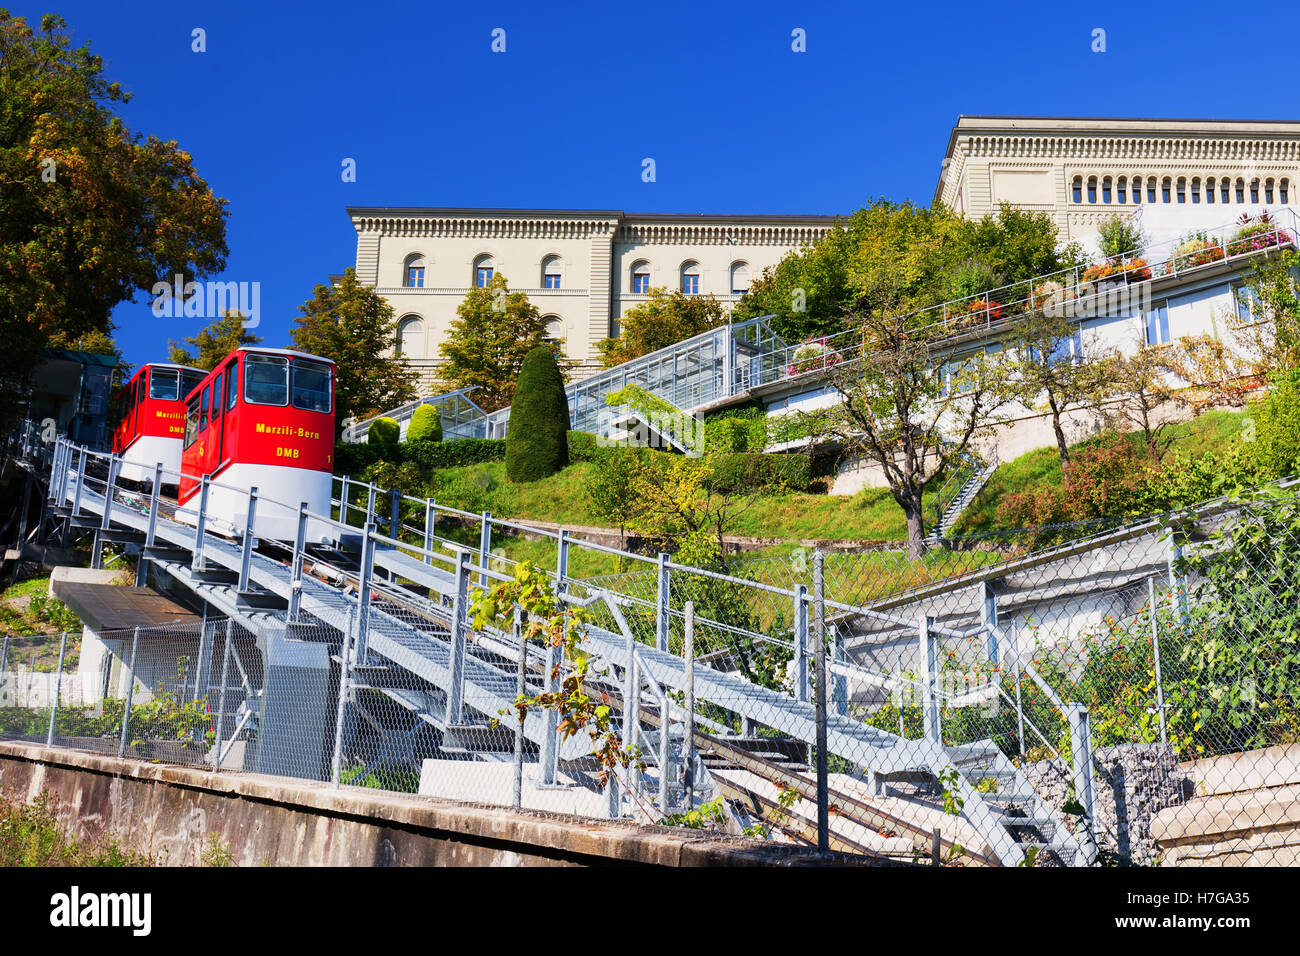 Marzili Bern funicular in the old city center of Bern town.  Bern is capital of Switzerland - Stock Image